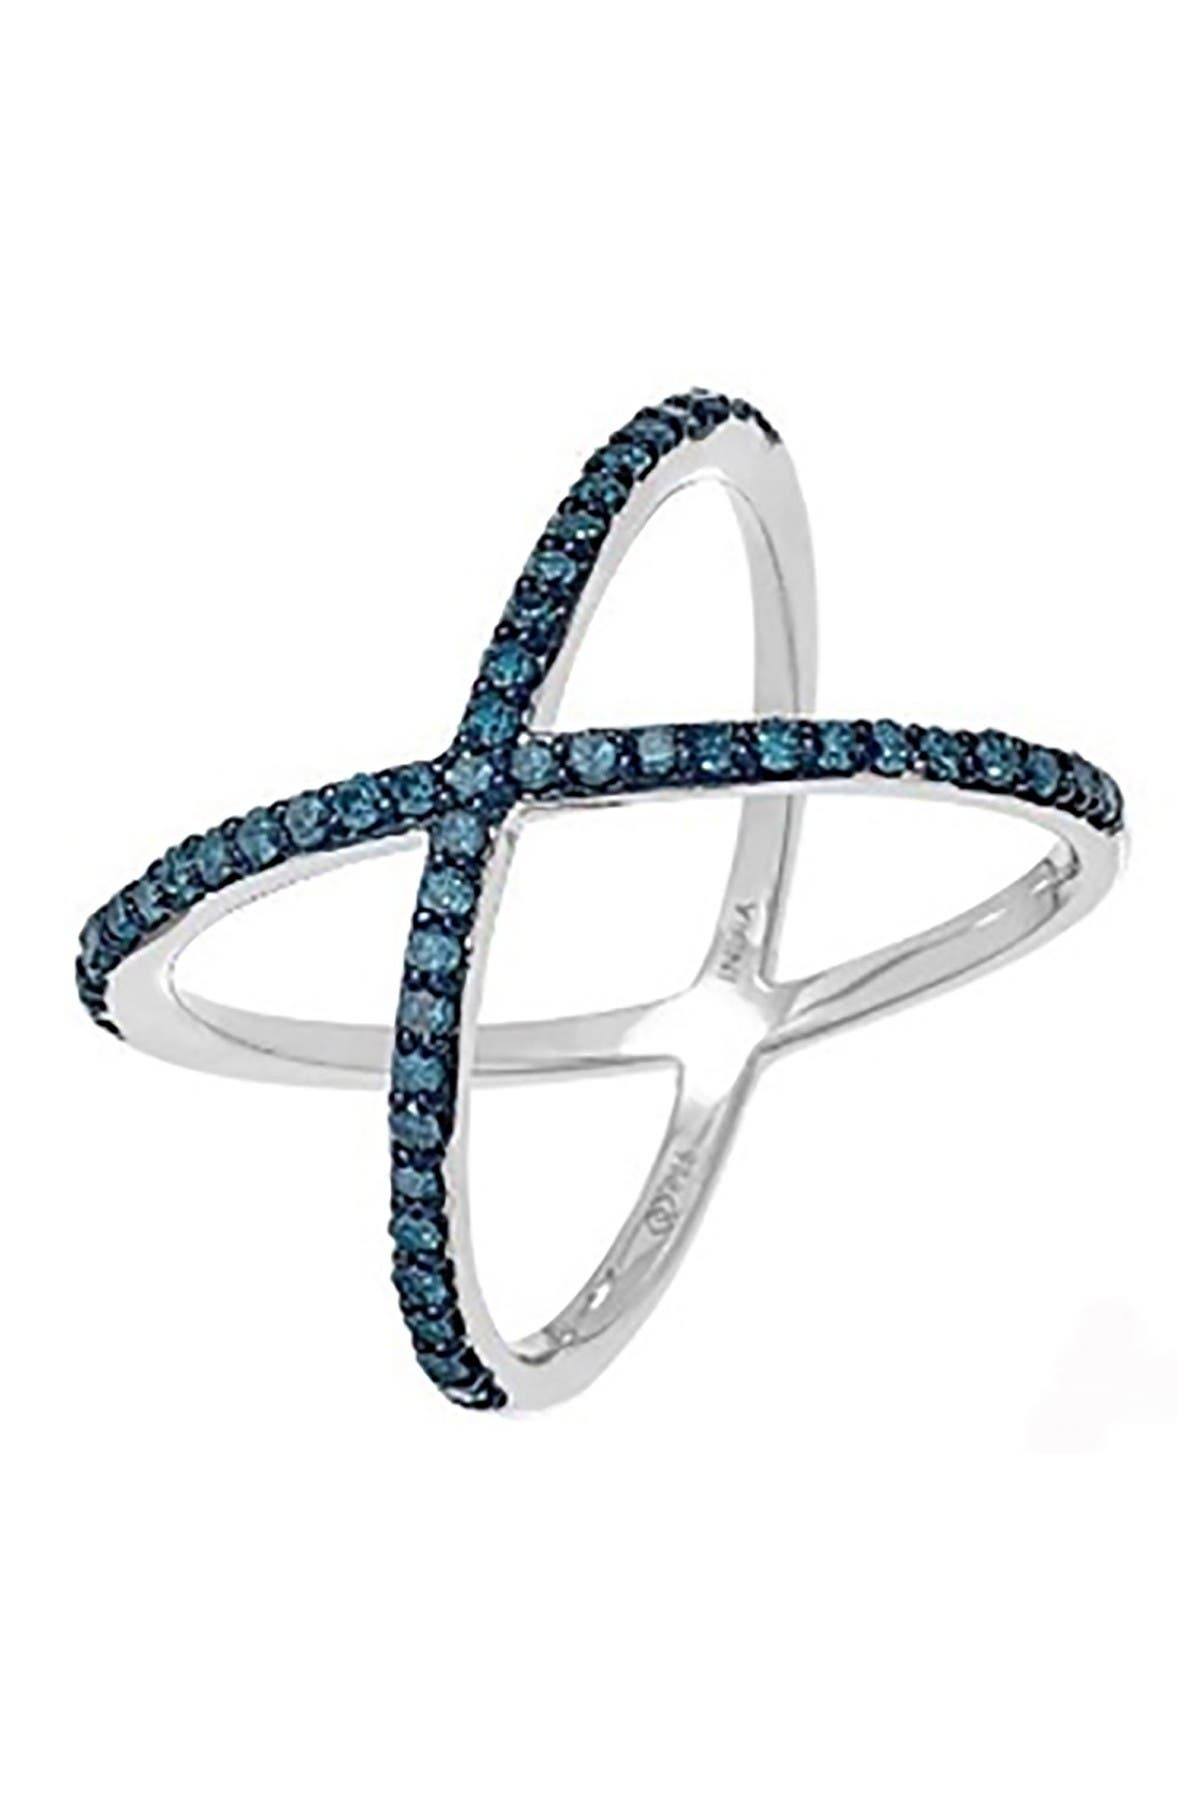 Image of Savvy Cie Sterling Silver Diamond Crossover Ring -  0.50 ctw